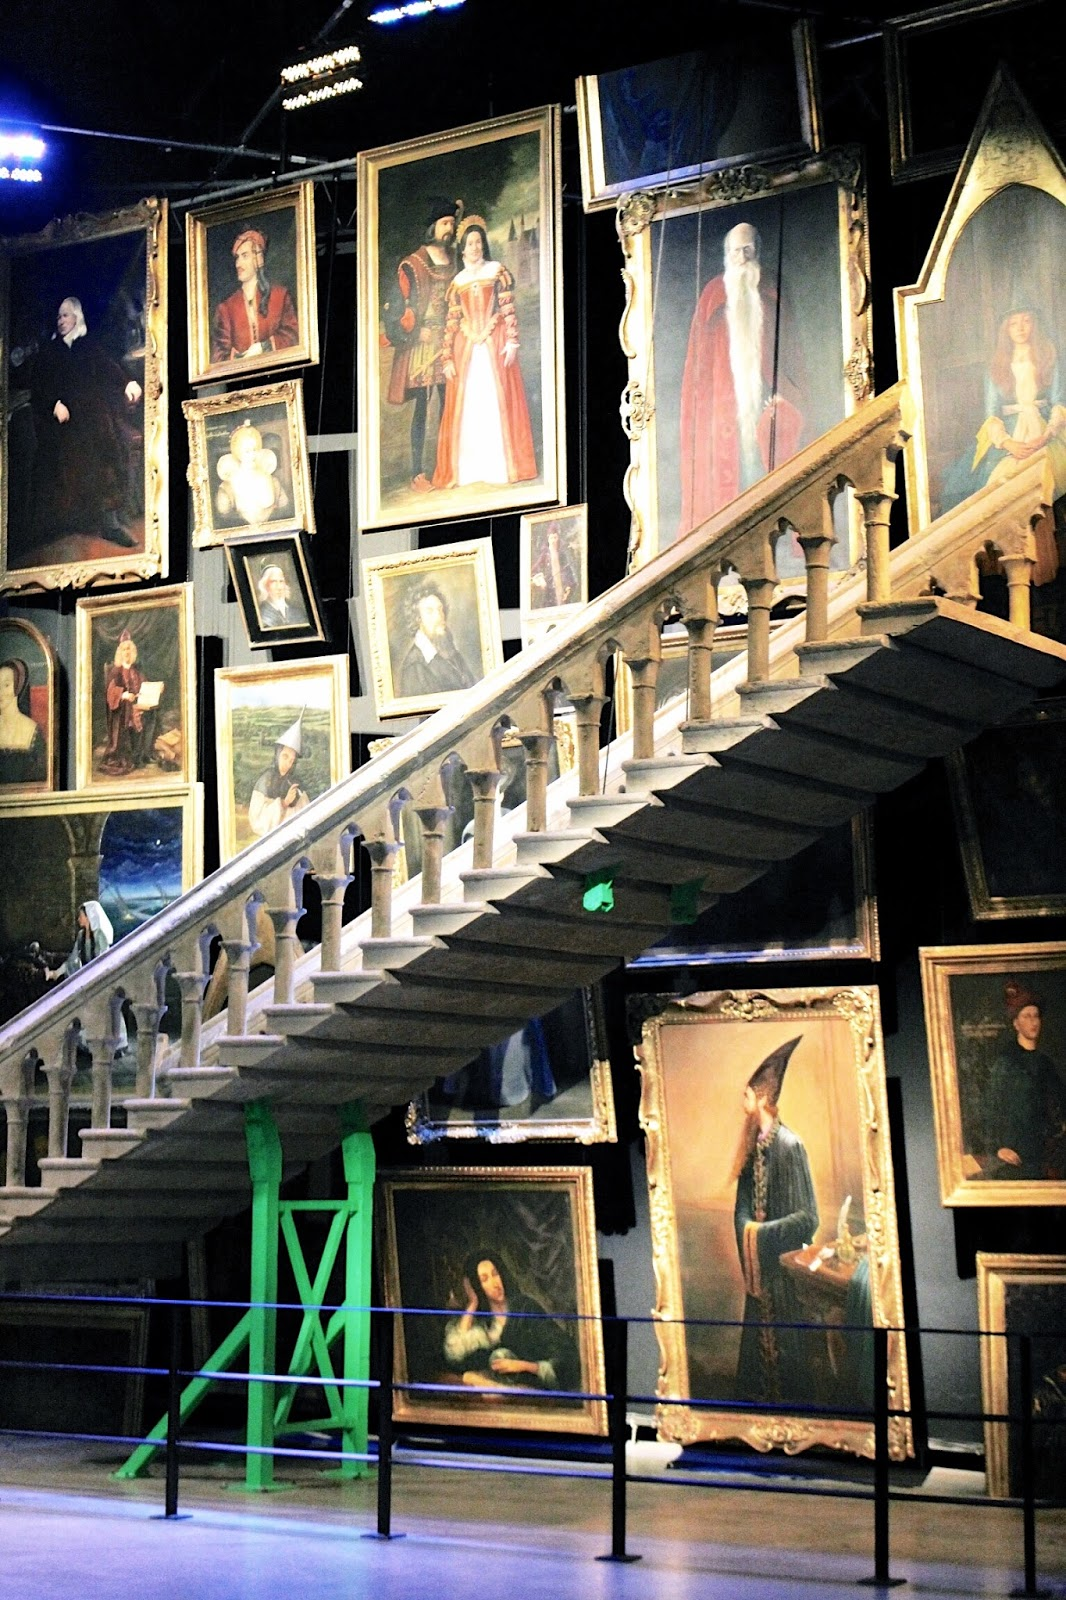 Warner Bros Studio Tour London Frames